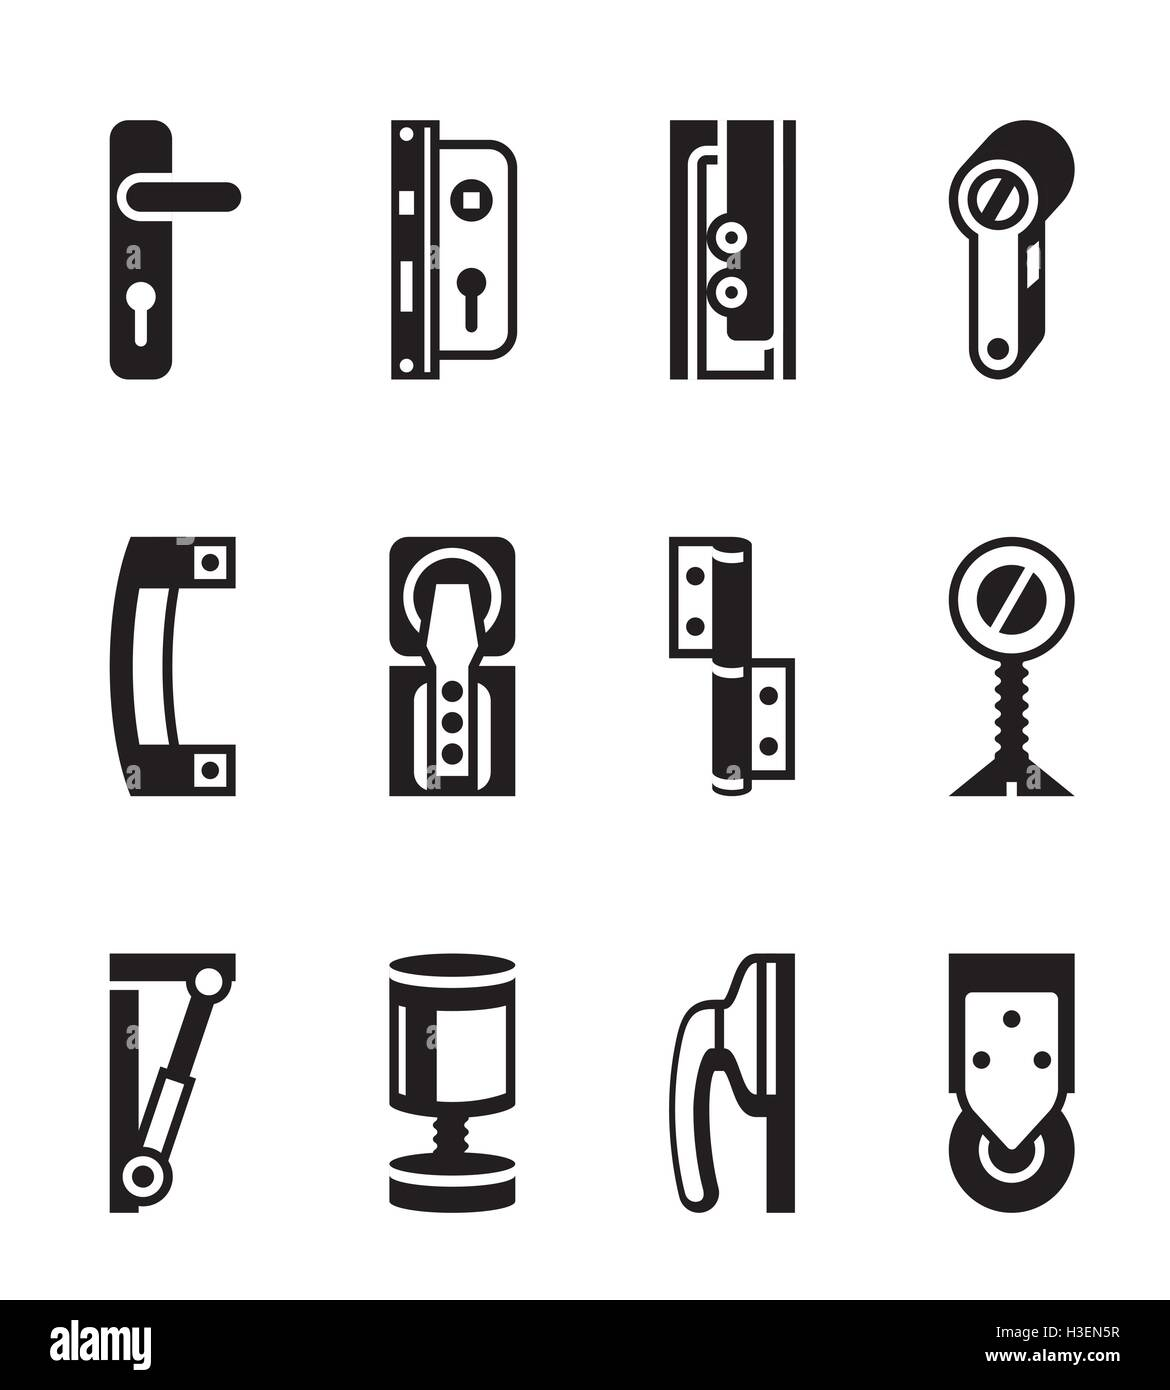 Interior and exterior fasteners - vector illustration - Stock Image